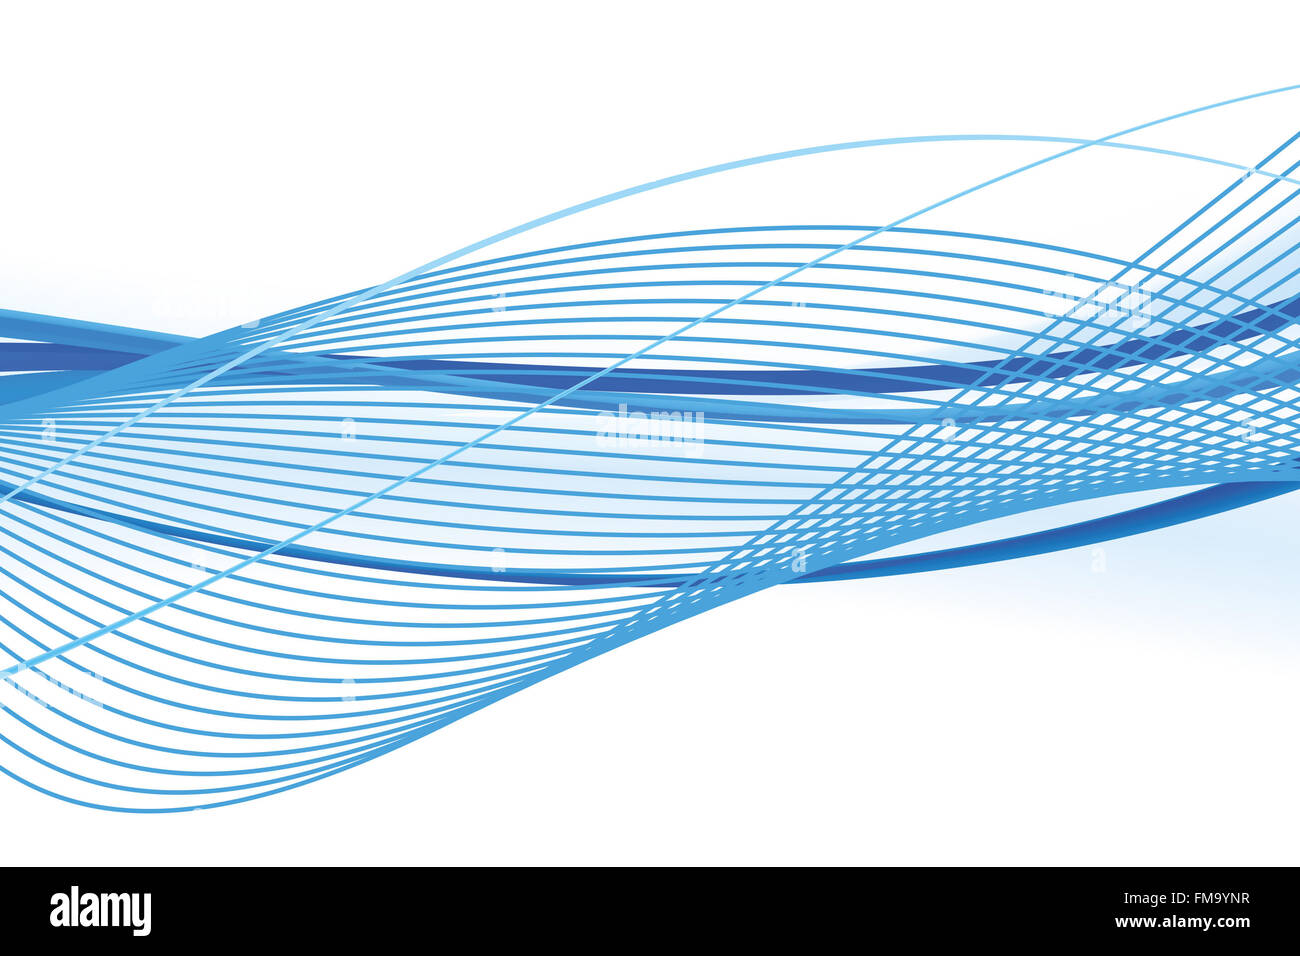 abstract, digital, illustration, energy, graphic, wave, futuristic, curve, blue, motion, modern, color, light, shape, Stock Photo